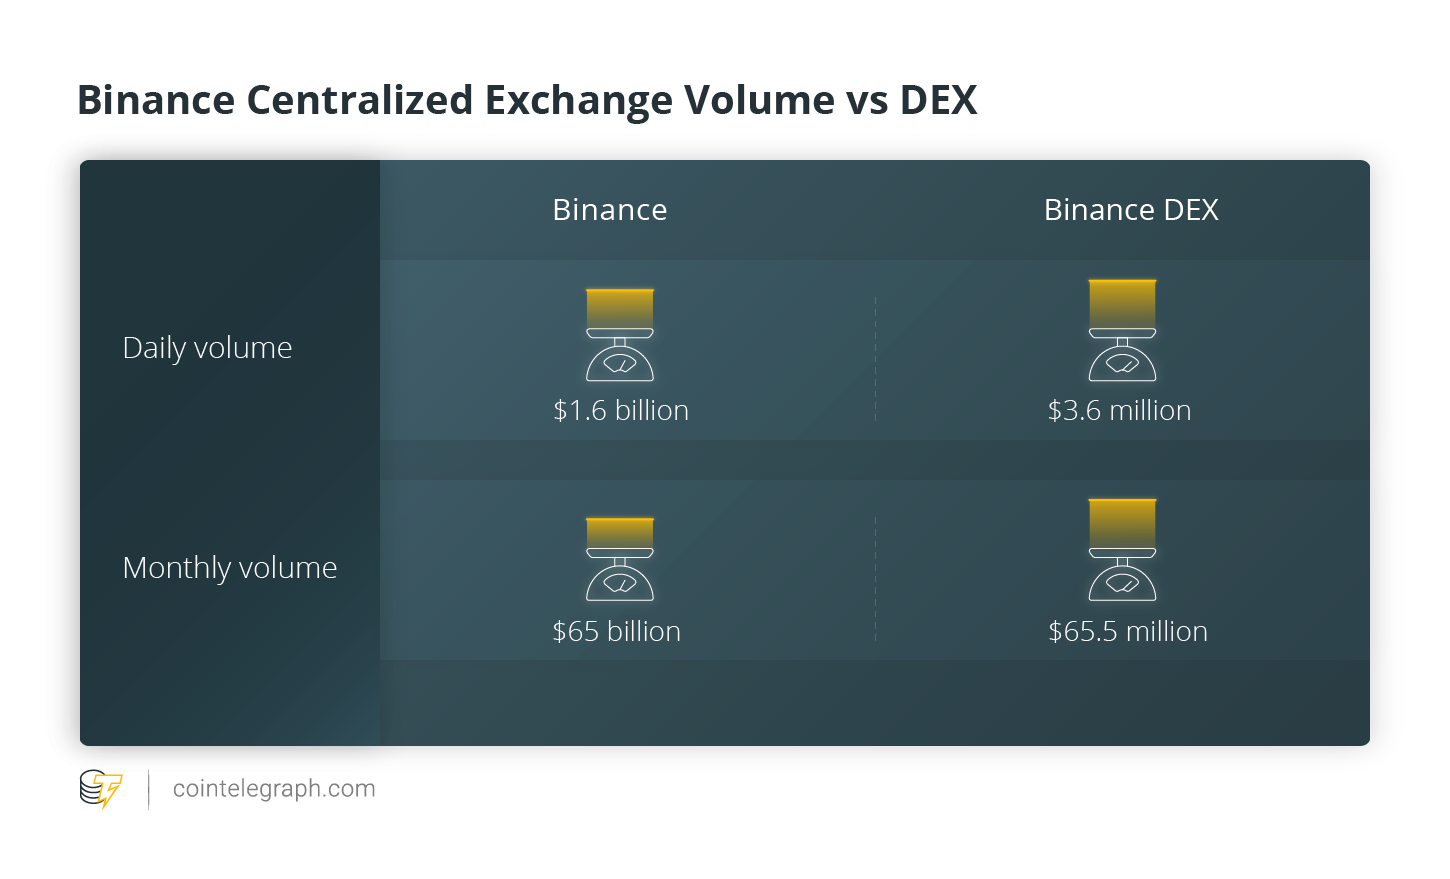 Binance centralized exchange volume vs DEX